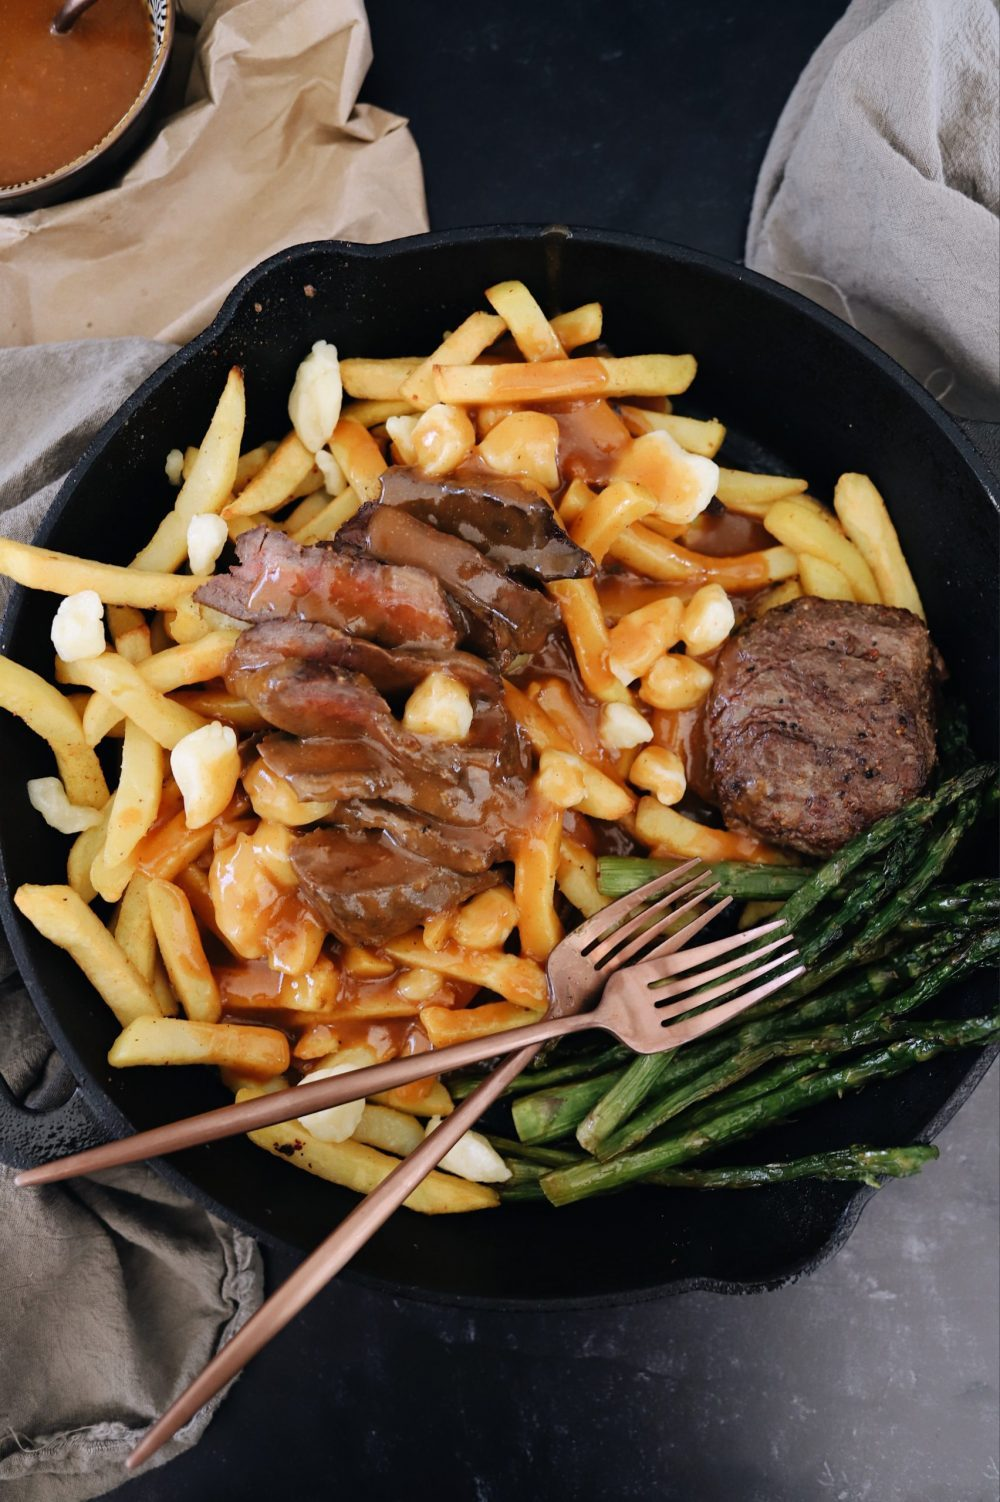 An Easy Steak Poutine Recipe with Fries and Gravy  Poutine Recipe by popular Florida lifestyle blog, Fresh Mommy Blog: image of steak poutine and asparagus in a black skillet.